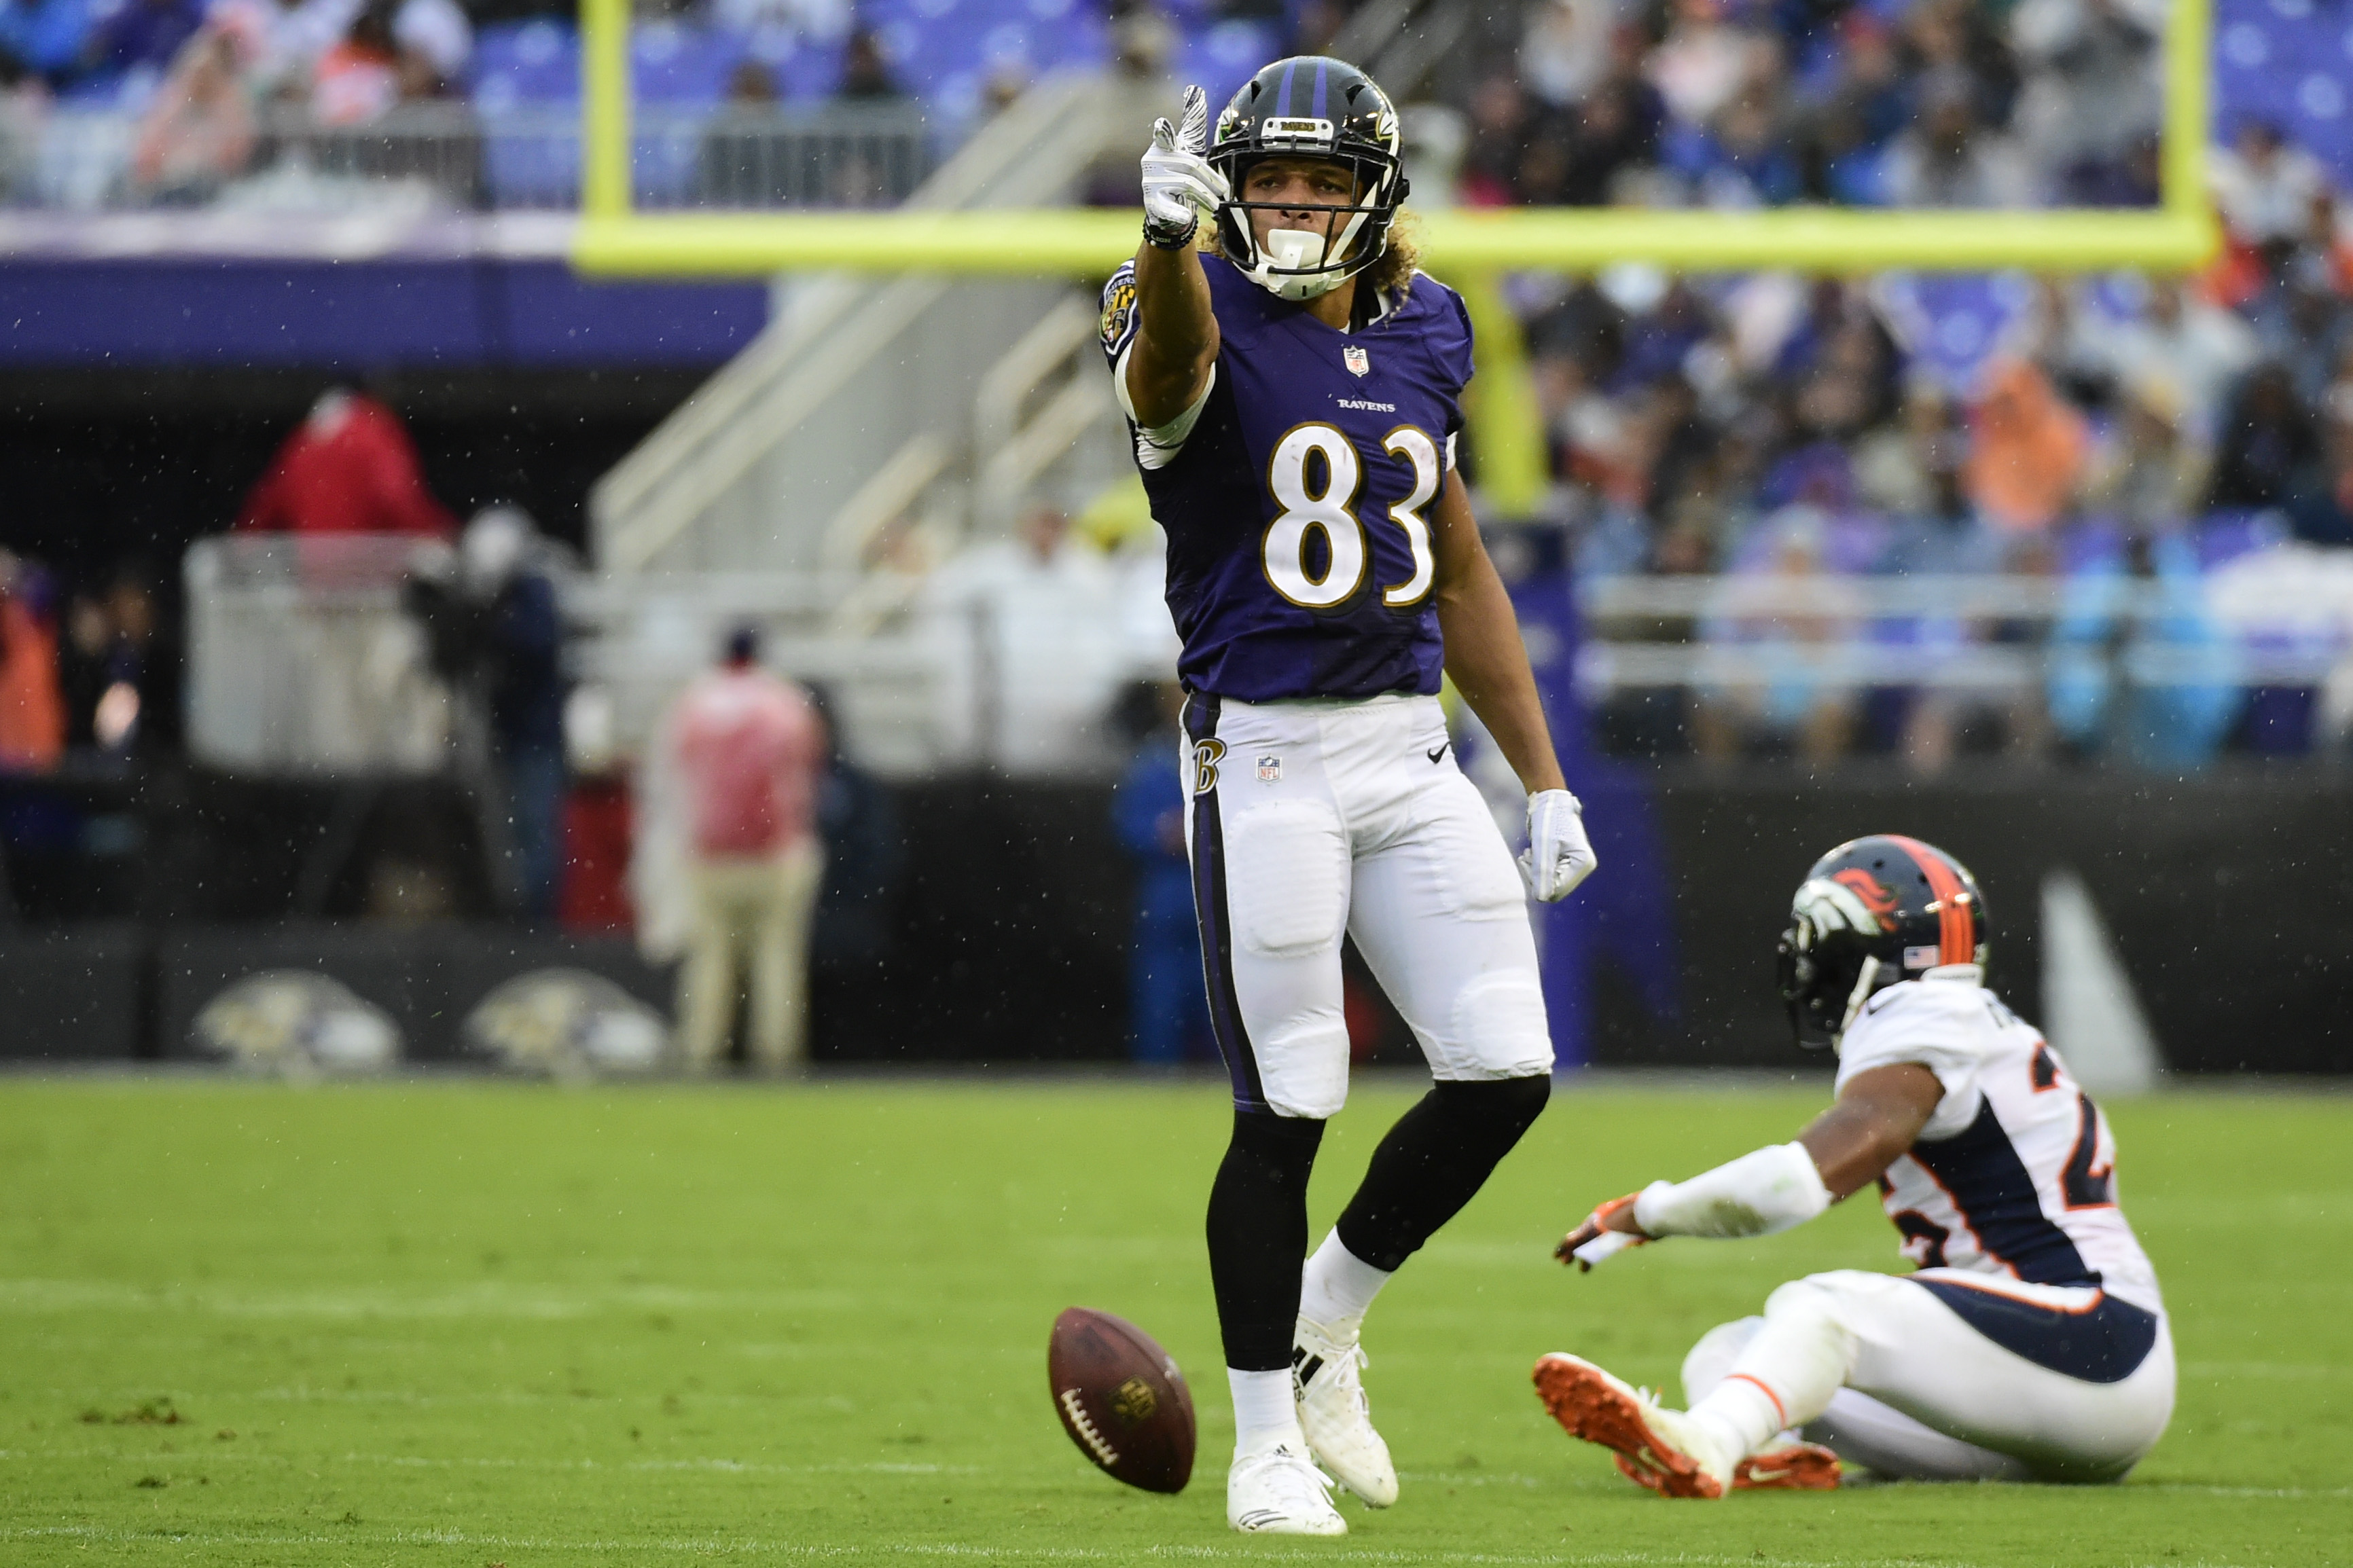 Baltimore Ravens WR Willie Snead